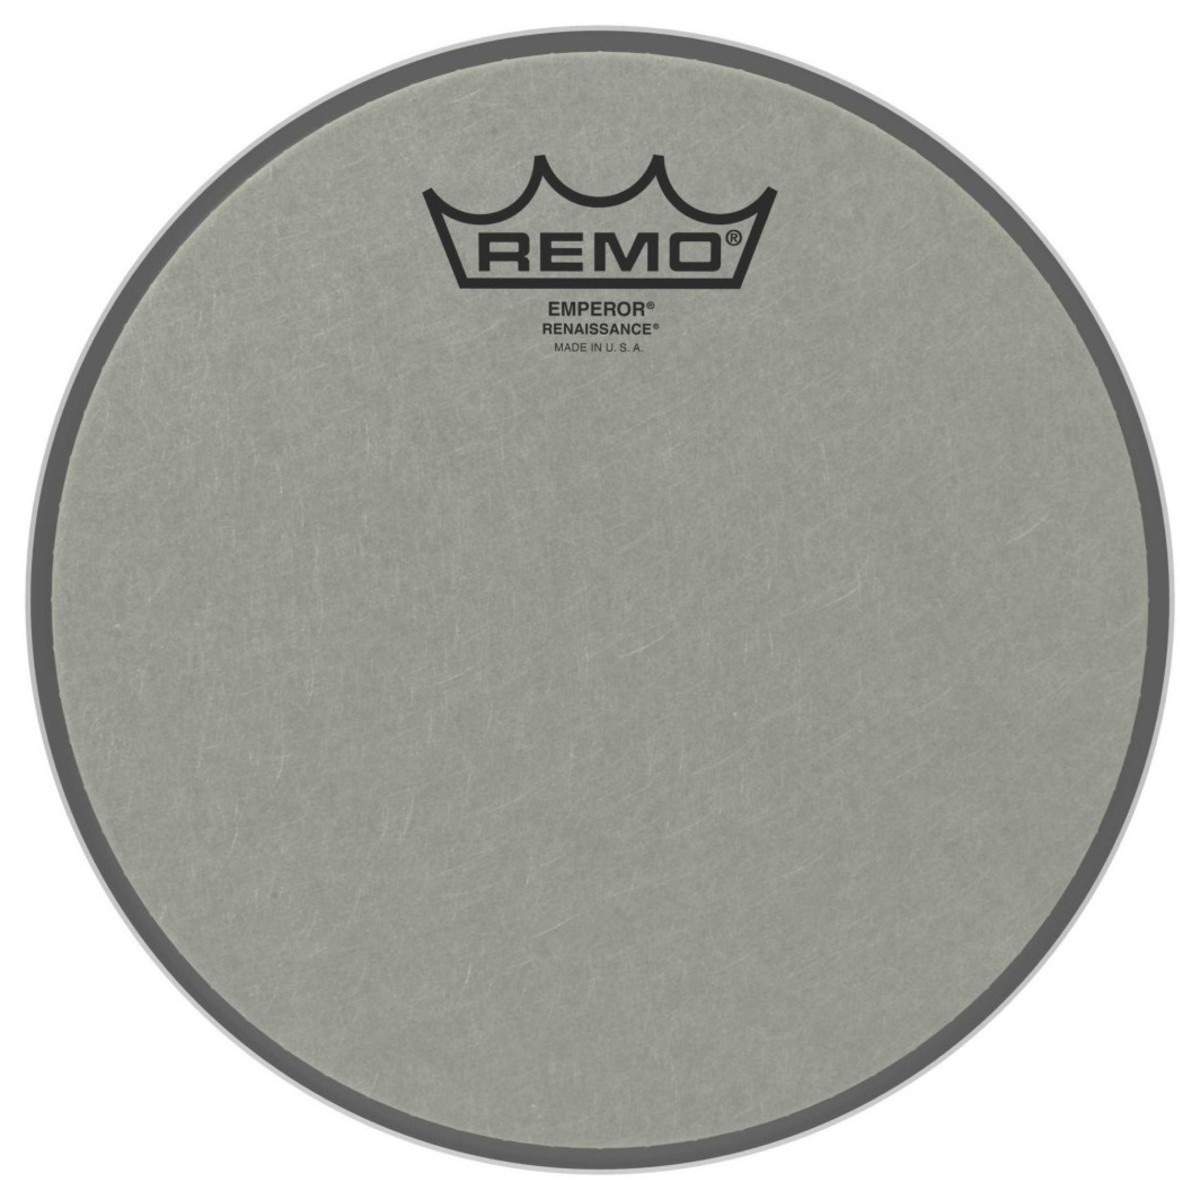 Click to view product details and reviews for Remo Emperor Renaissance 8 Drum Head.